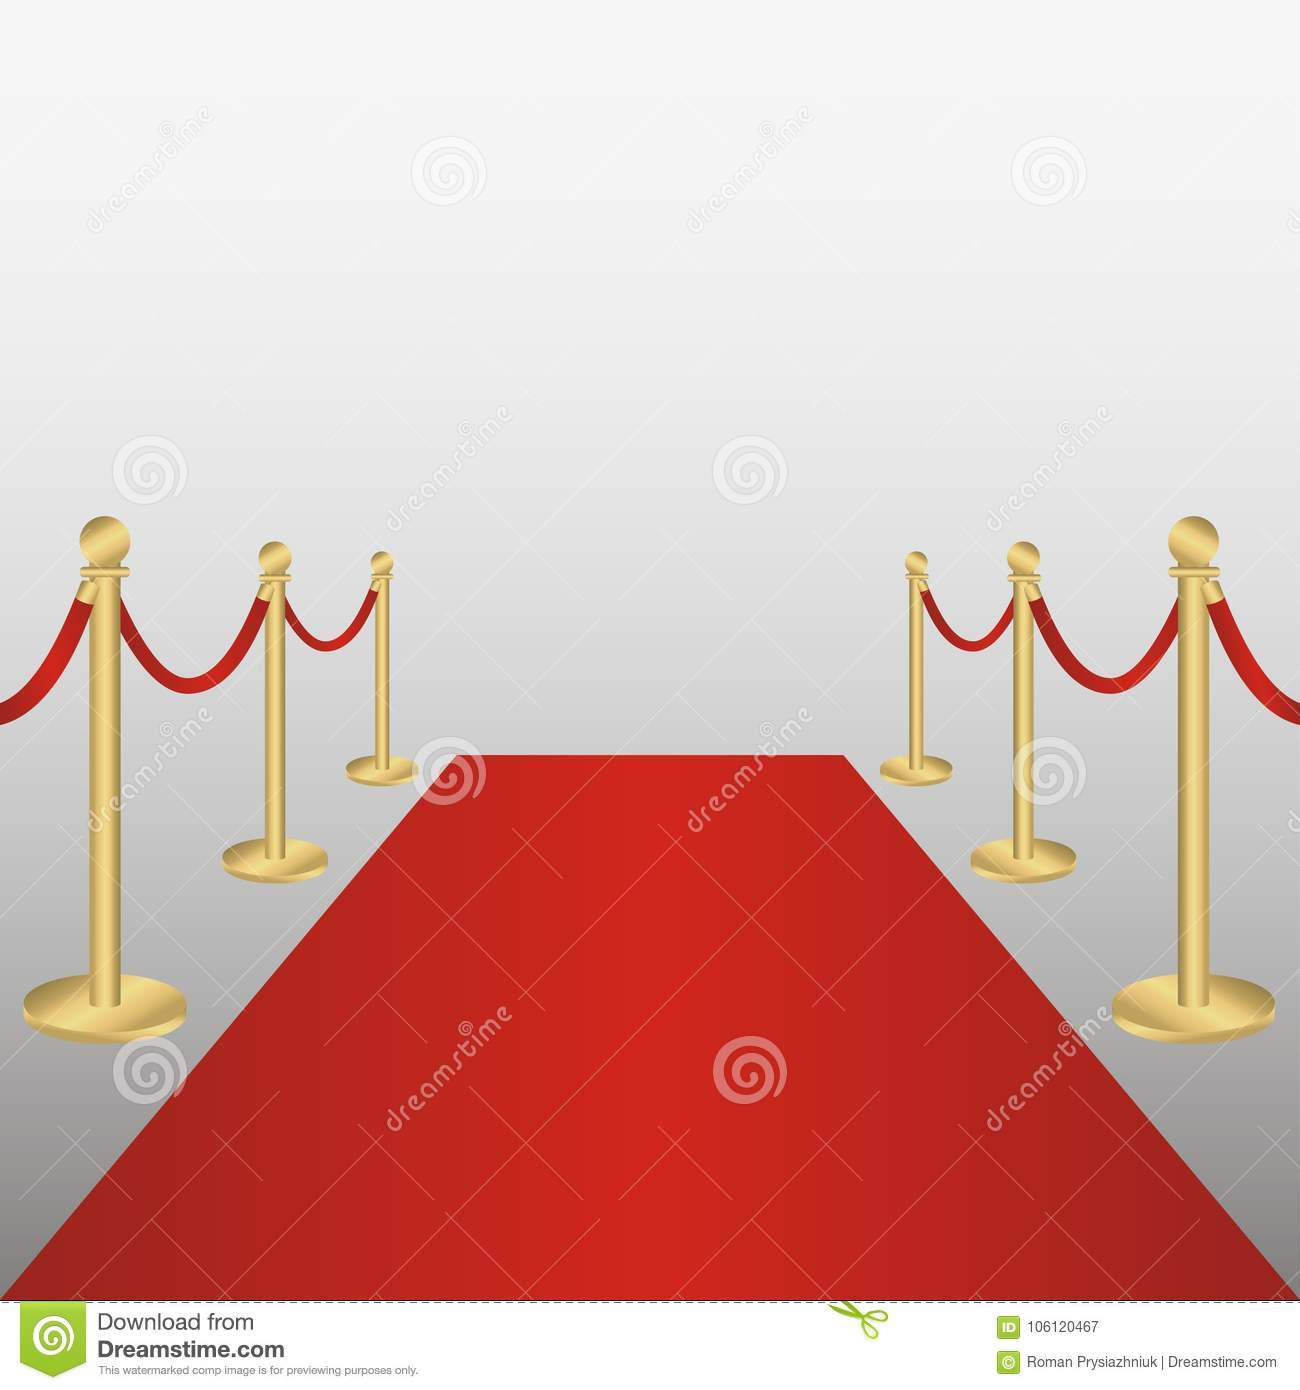 Roter Teppich Vip Red Carpet Red Carpet With Gold Barriers Rope Corridor For Vip Persons